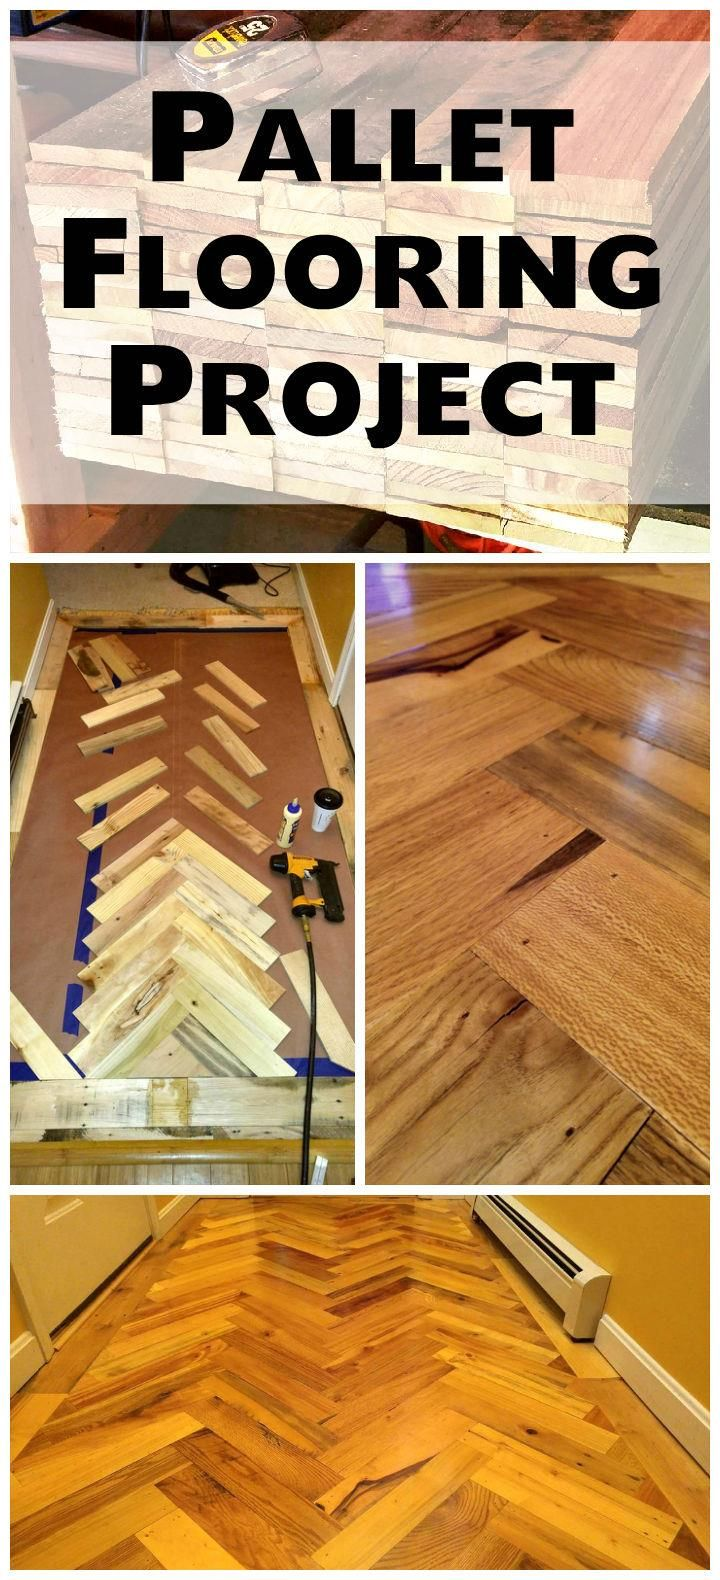 Chevron wood pallet flooring project 101 pallet ideas pallet chevron wood pallet flooring project 101 pallet ideas solutioingenieria Image collections